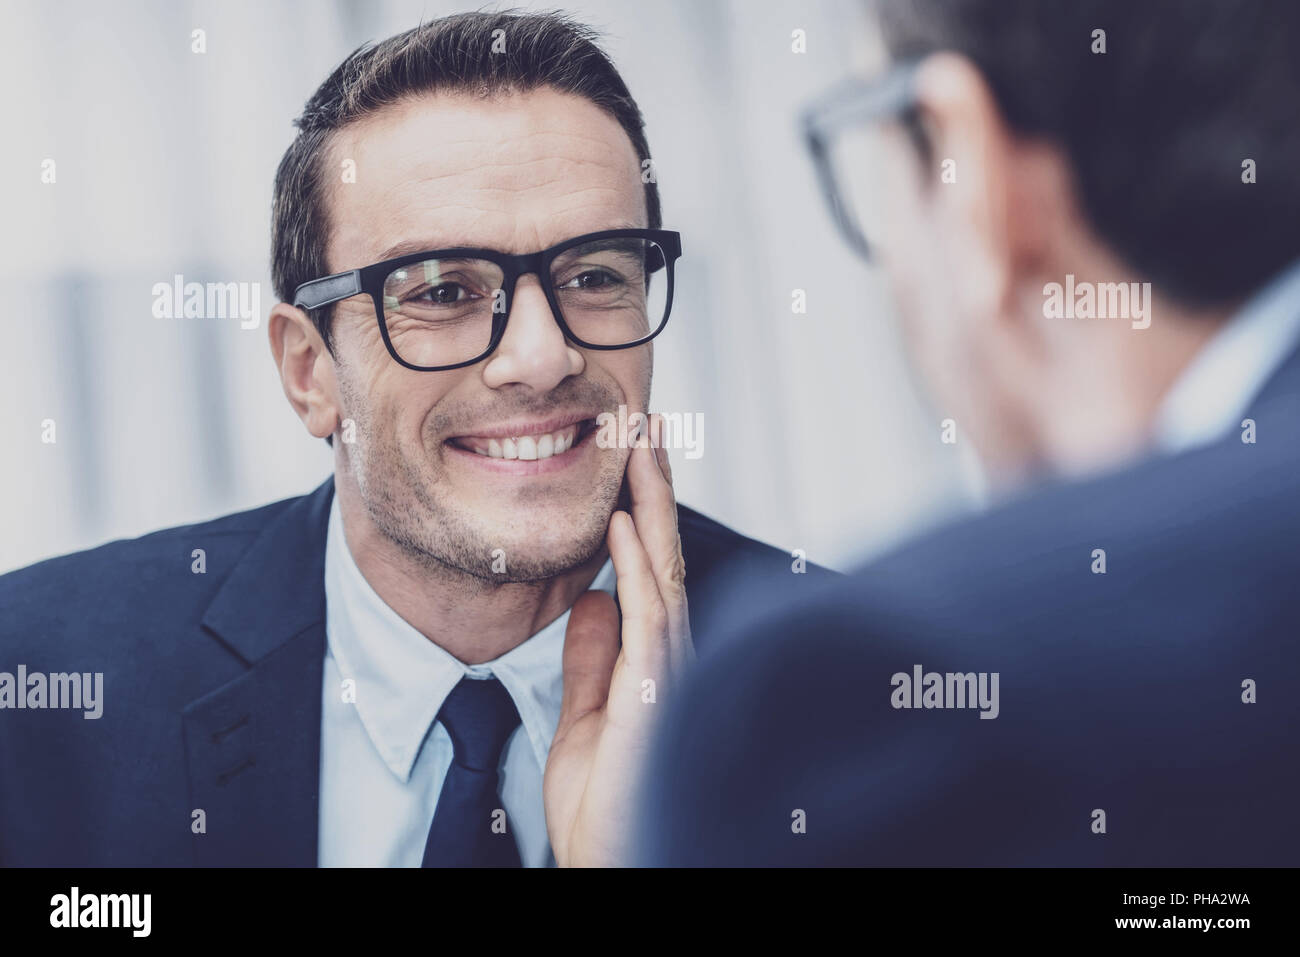 Positive man looking at his face in mirror - Stock Image